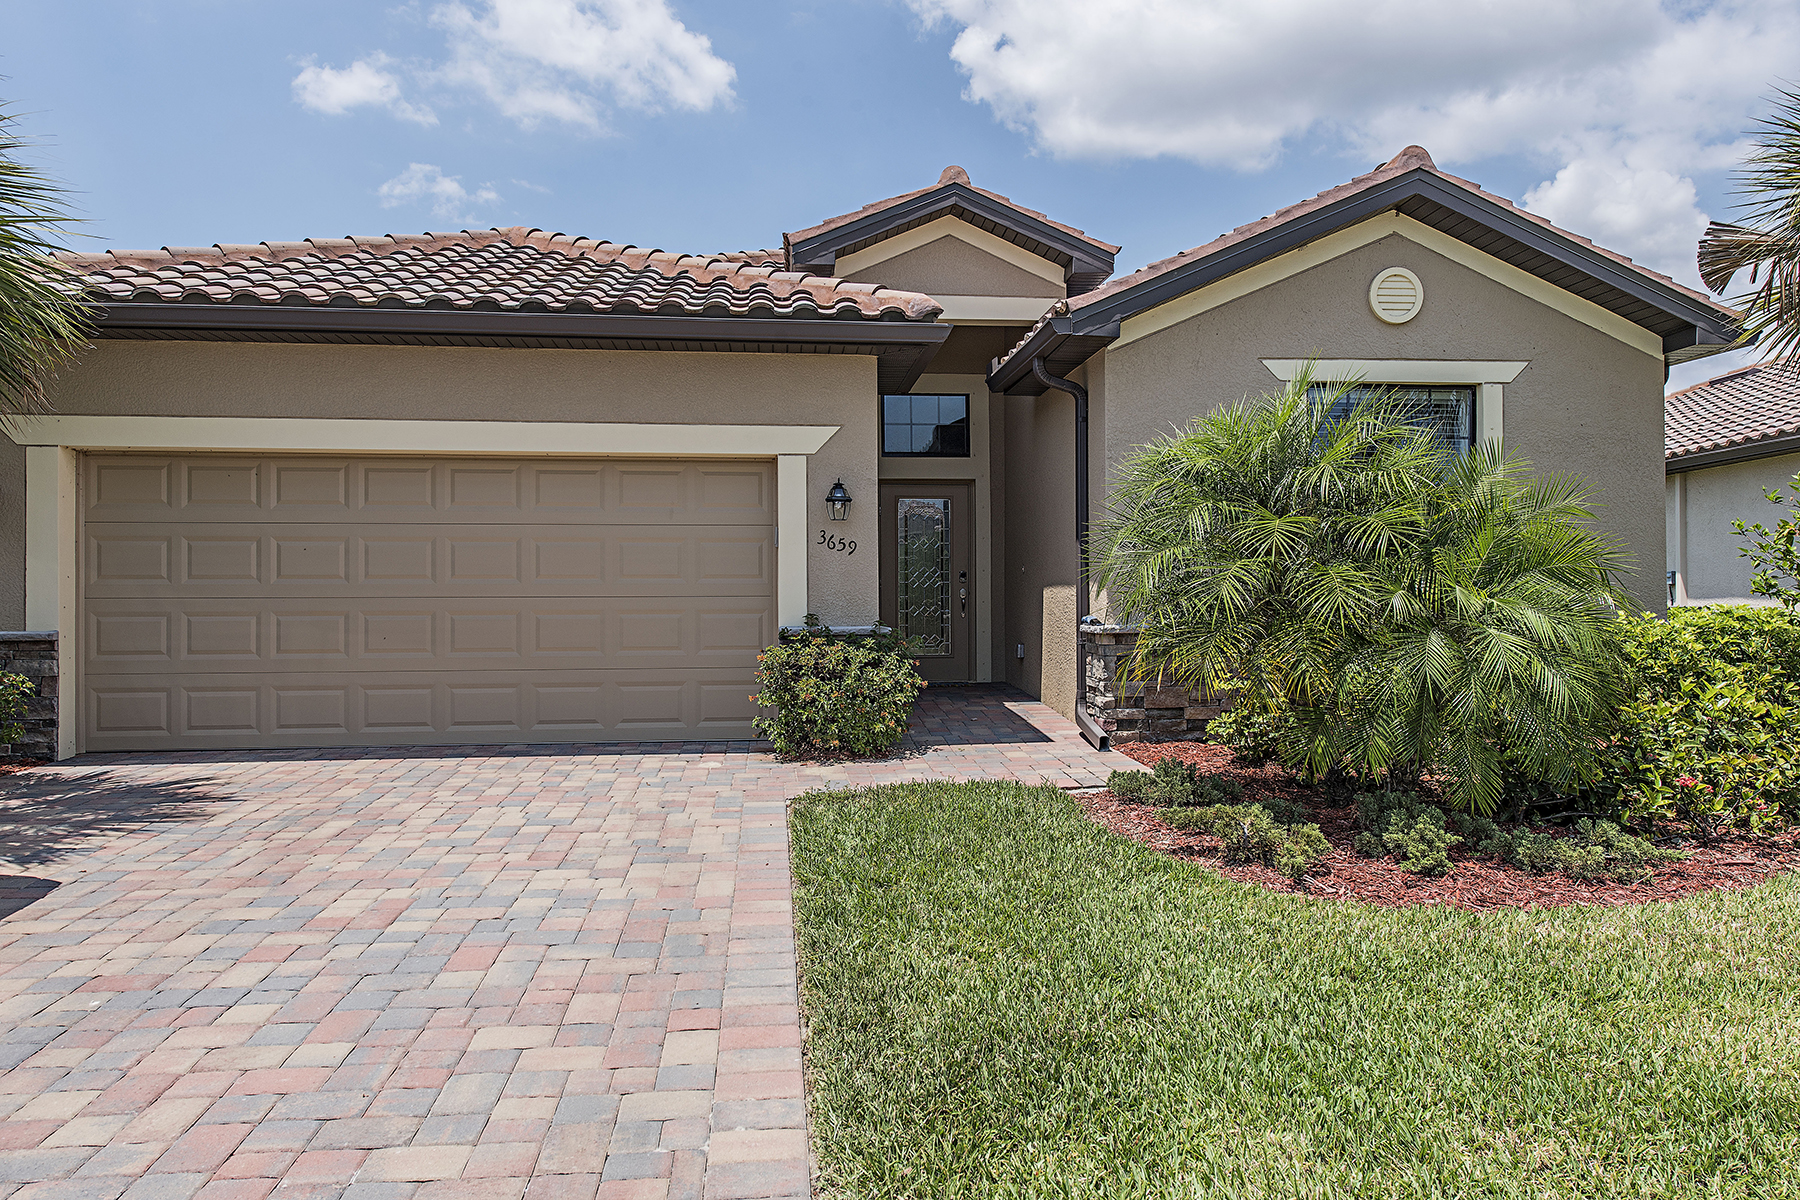 Single Family Home for Sale at NAPLES - COPPER COVE 3659 Treasure Cove Cir Naples, Florida, 34114 United States